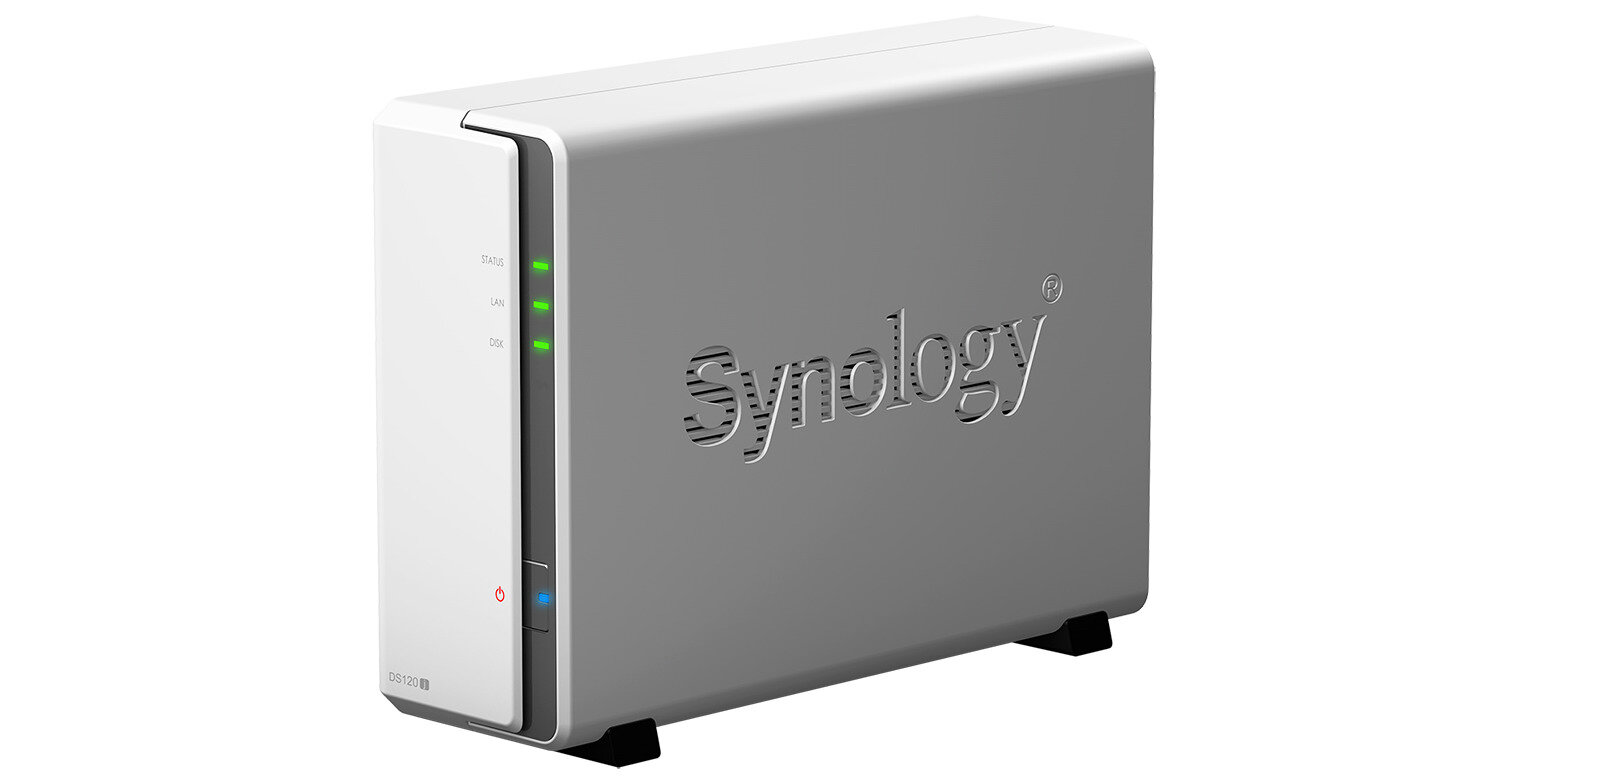 Synology annonce son NAS DS120j à 105 euros